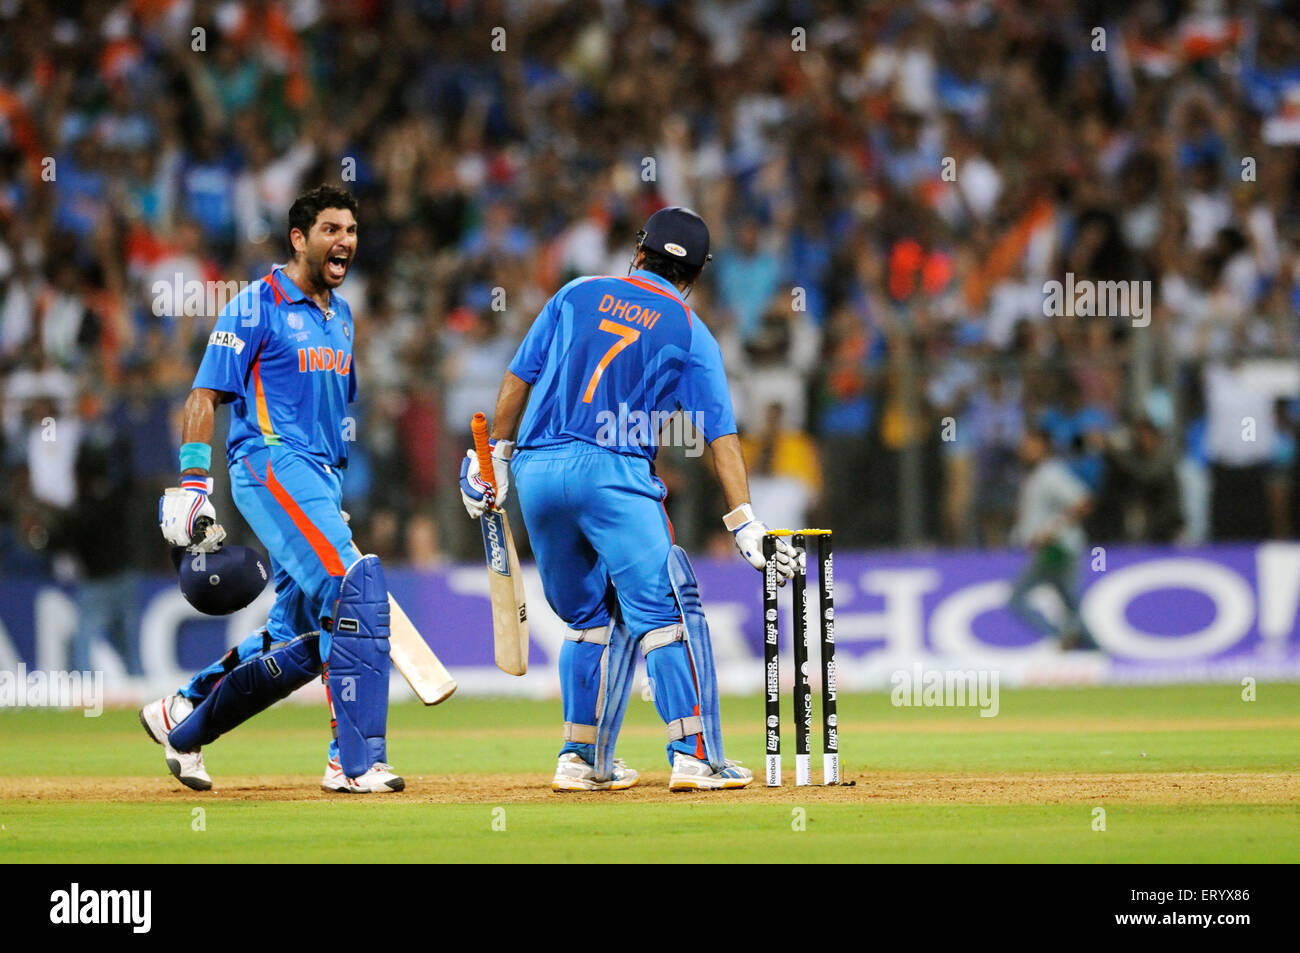 Indian Cricket Team Batsman Yuvraj Singh: Indian Cricket Captain Mahendra Singh Dhoni R And Team